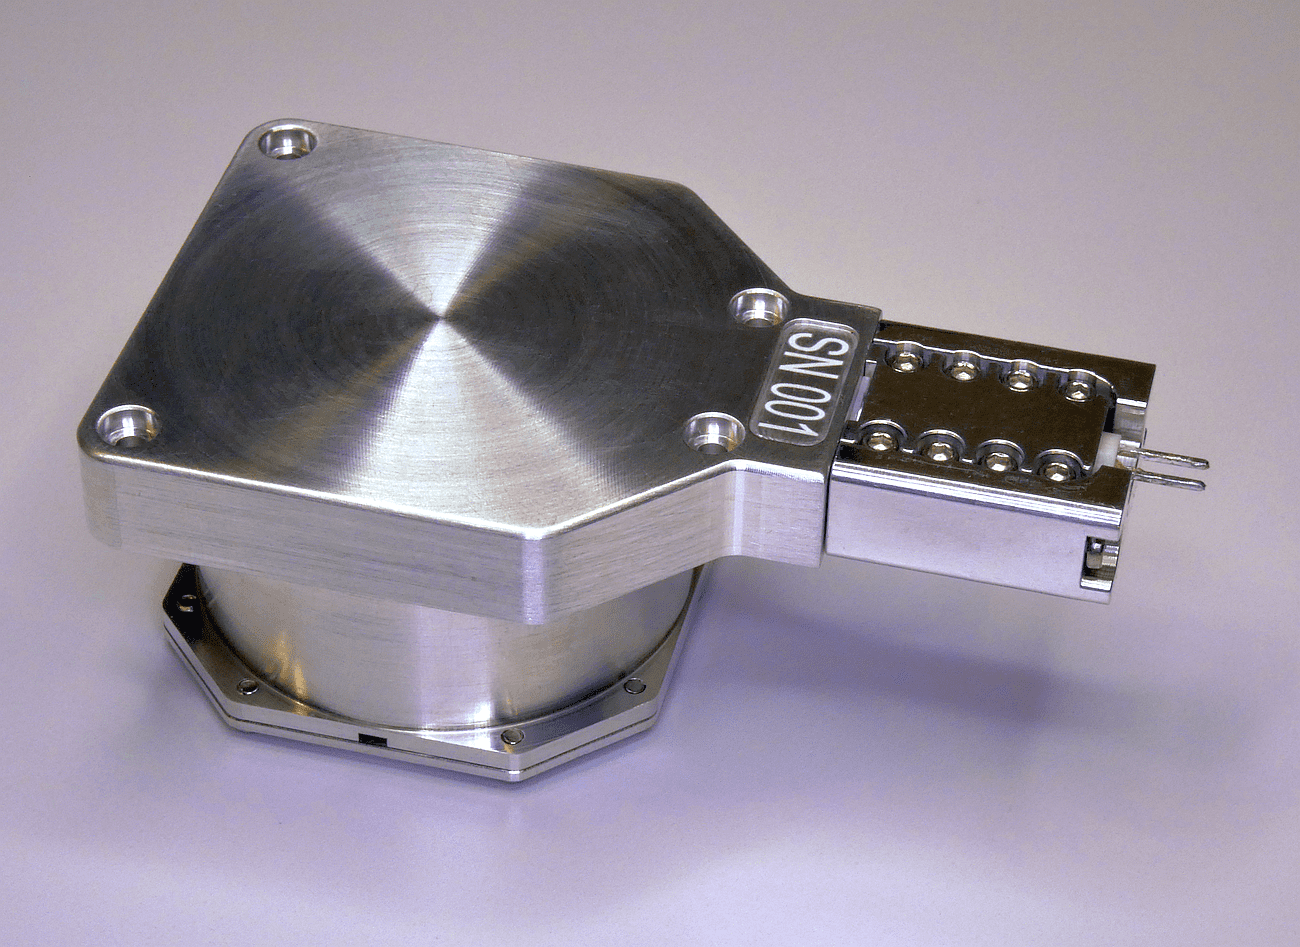 Cartridge for Tungsten W and Molybdenum Mo deposition precursor refill in Micrion Vectra, Vectra 986, FEI Vectra Vision, V65, IET WDR Focused Ion Beam Circuit Edit FIB